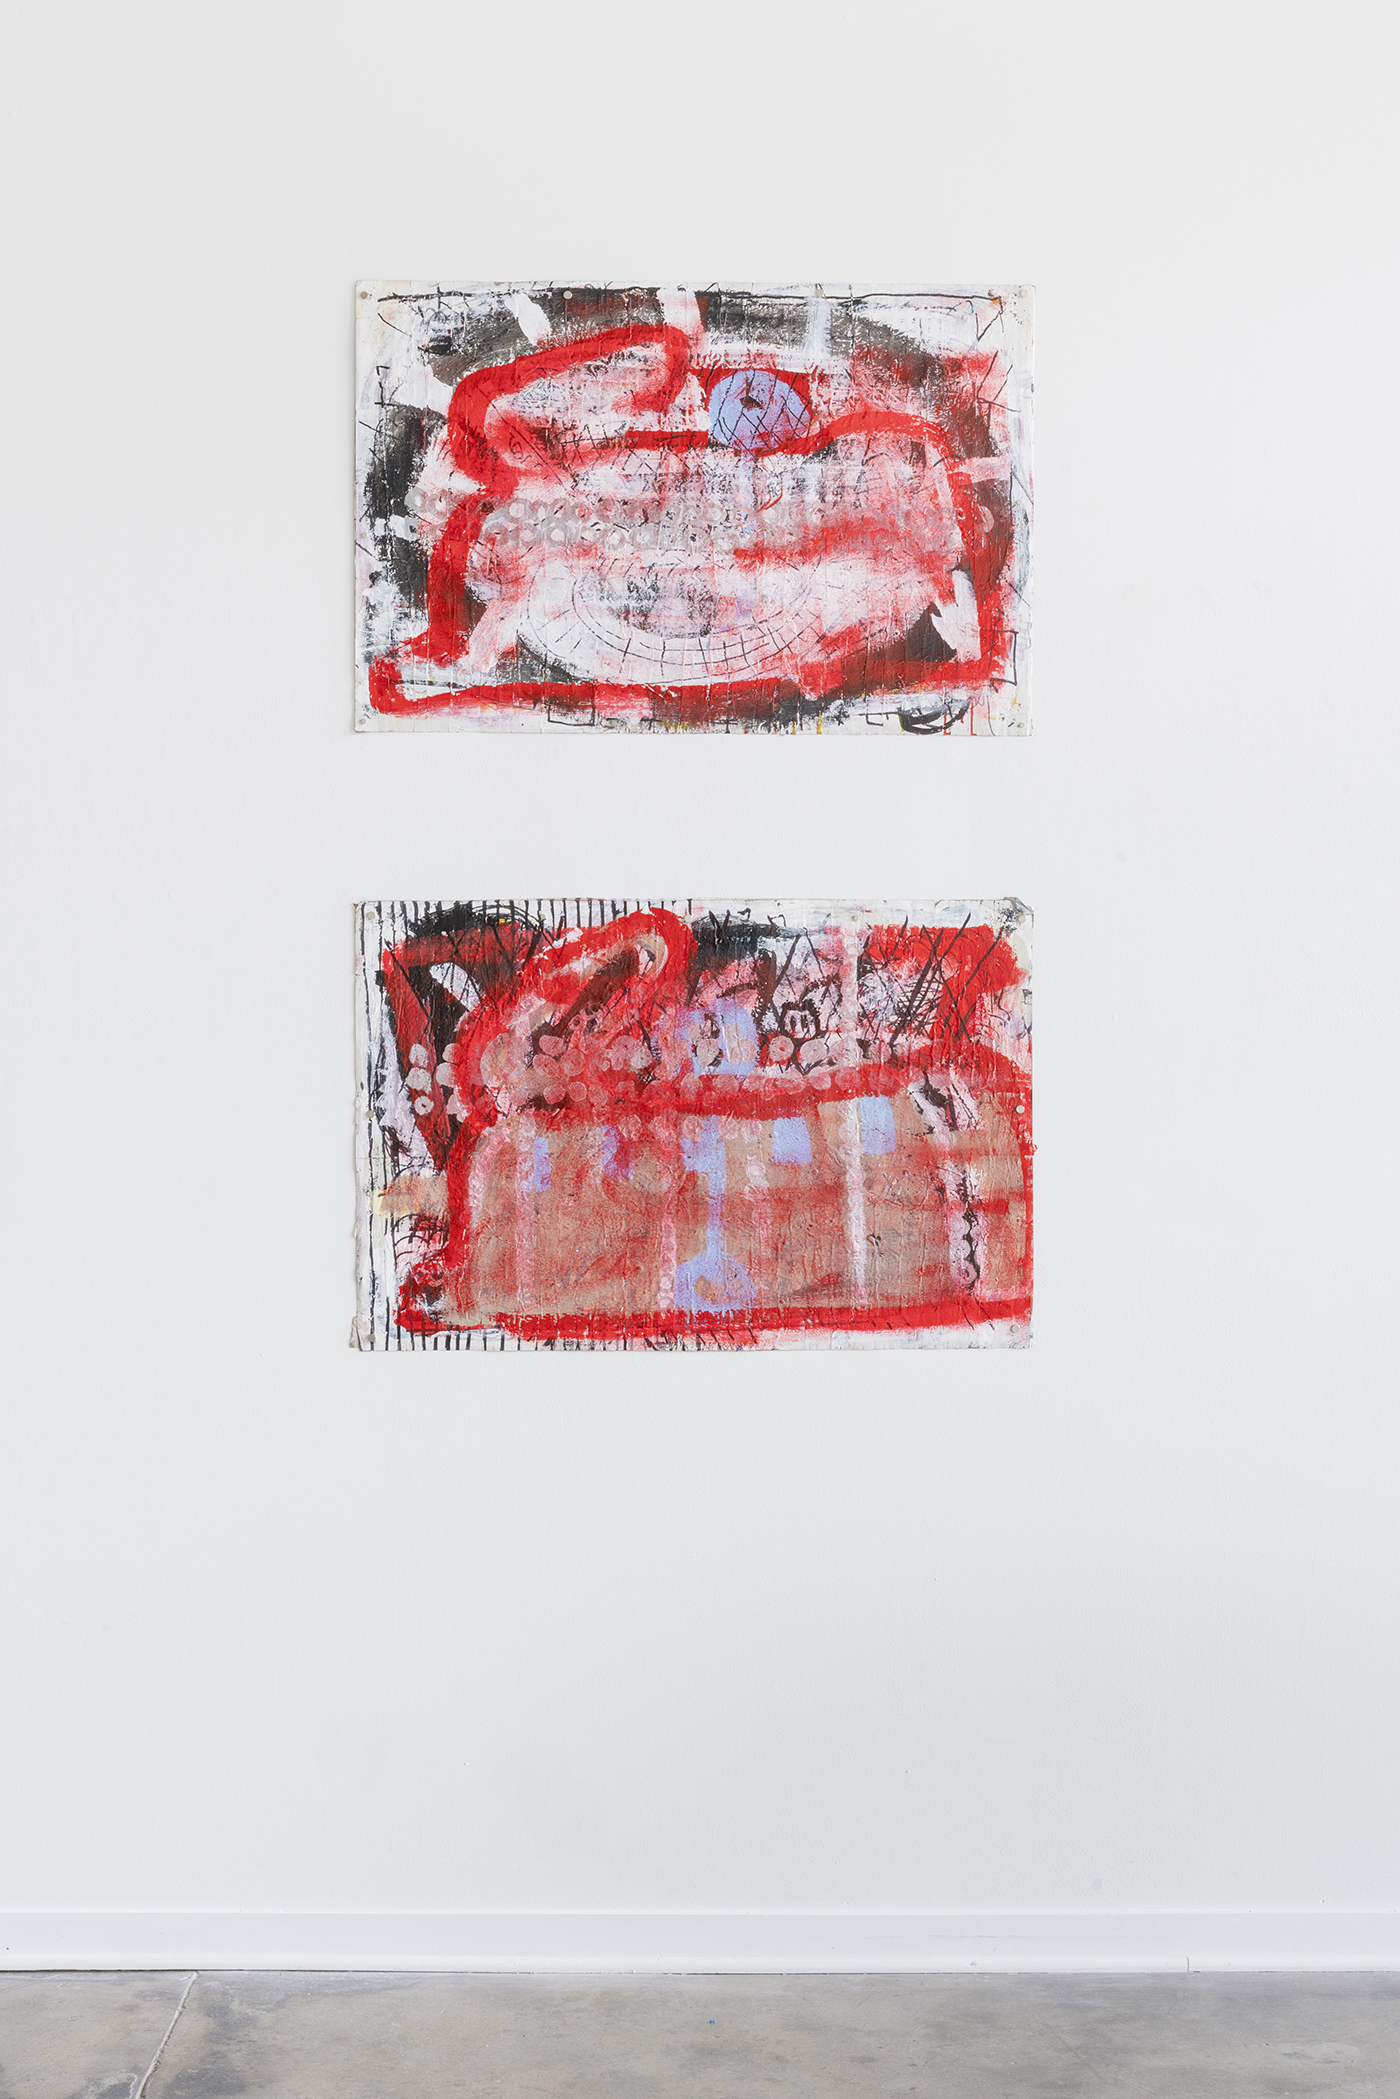 Luchs_installation_view8_Two_Red_Squirrels_on_Paper_2_web